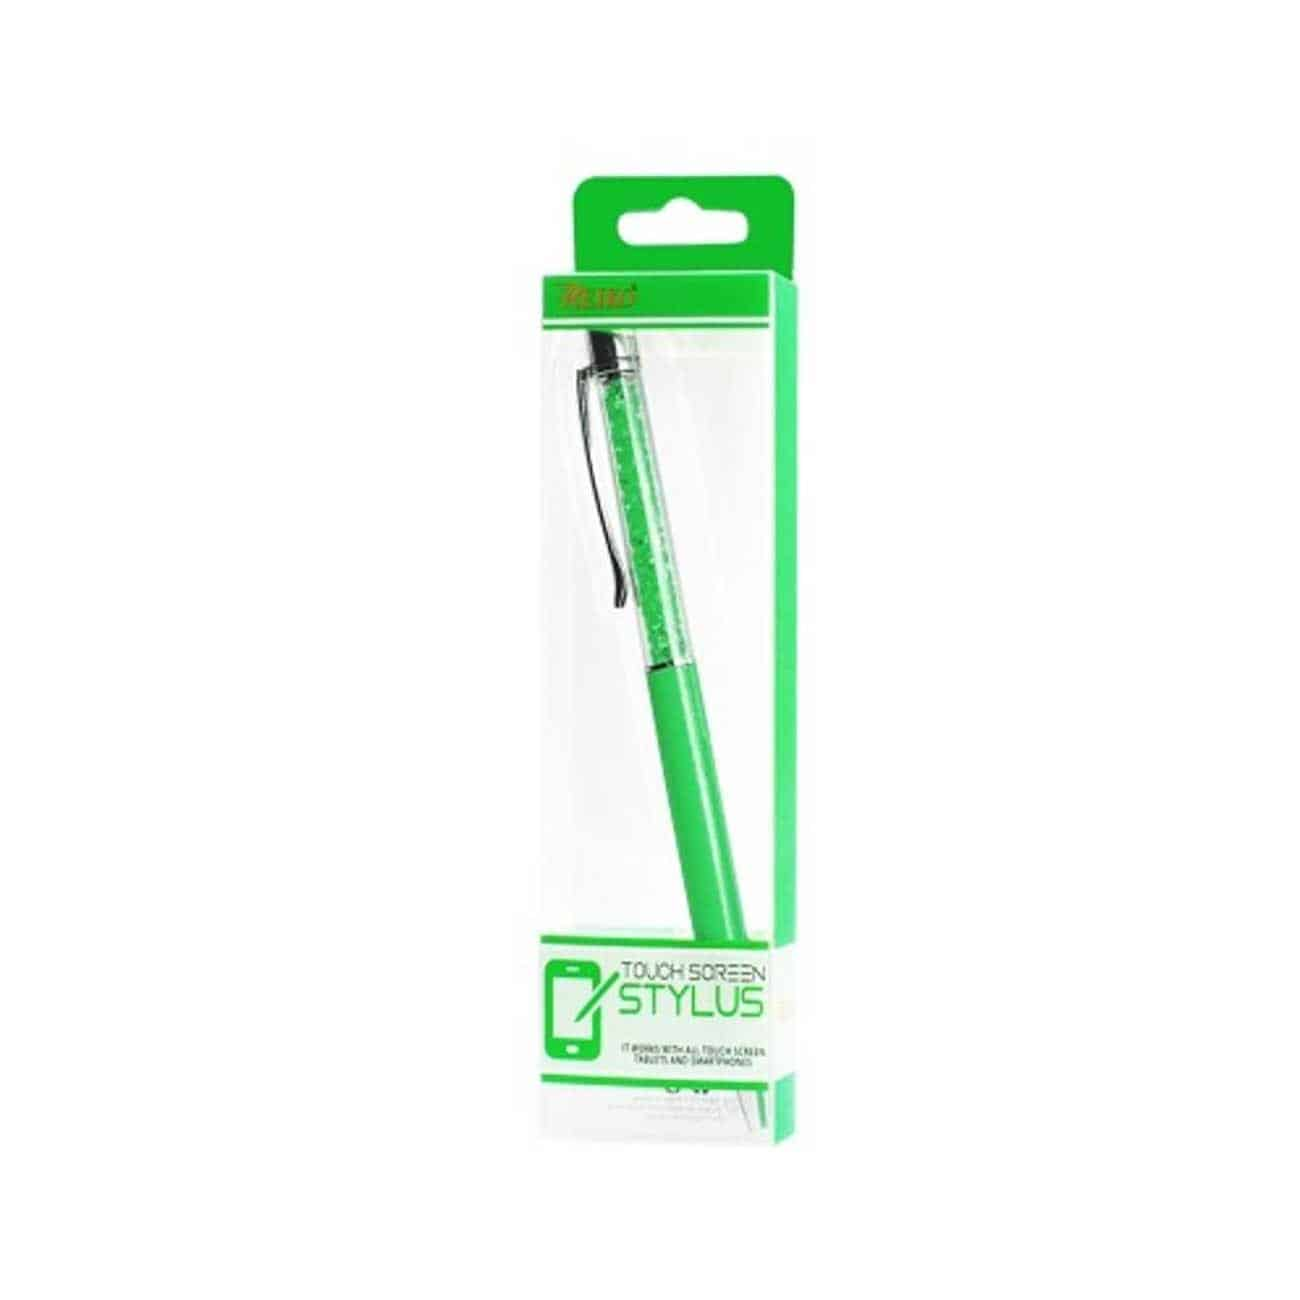 CRYSTAL STYLUS TOUCH SCREEN WITH INK PEN IN GREEN